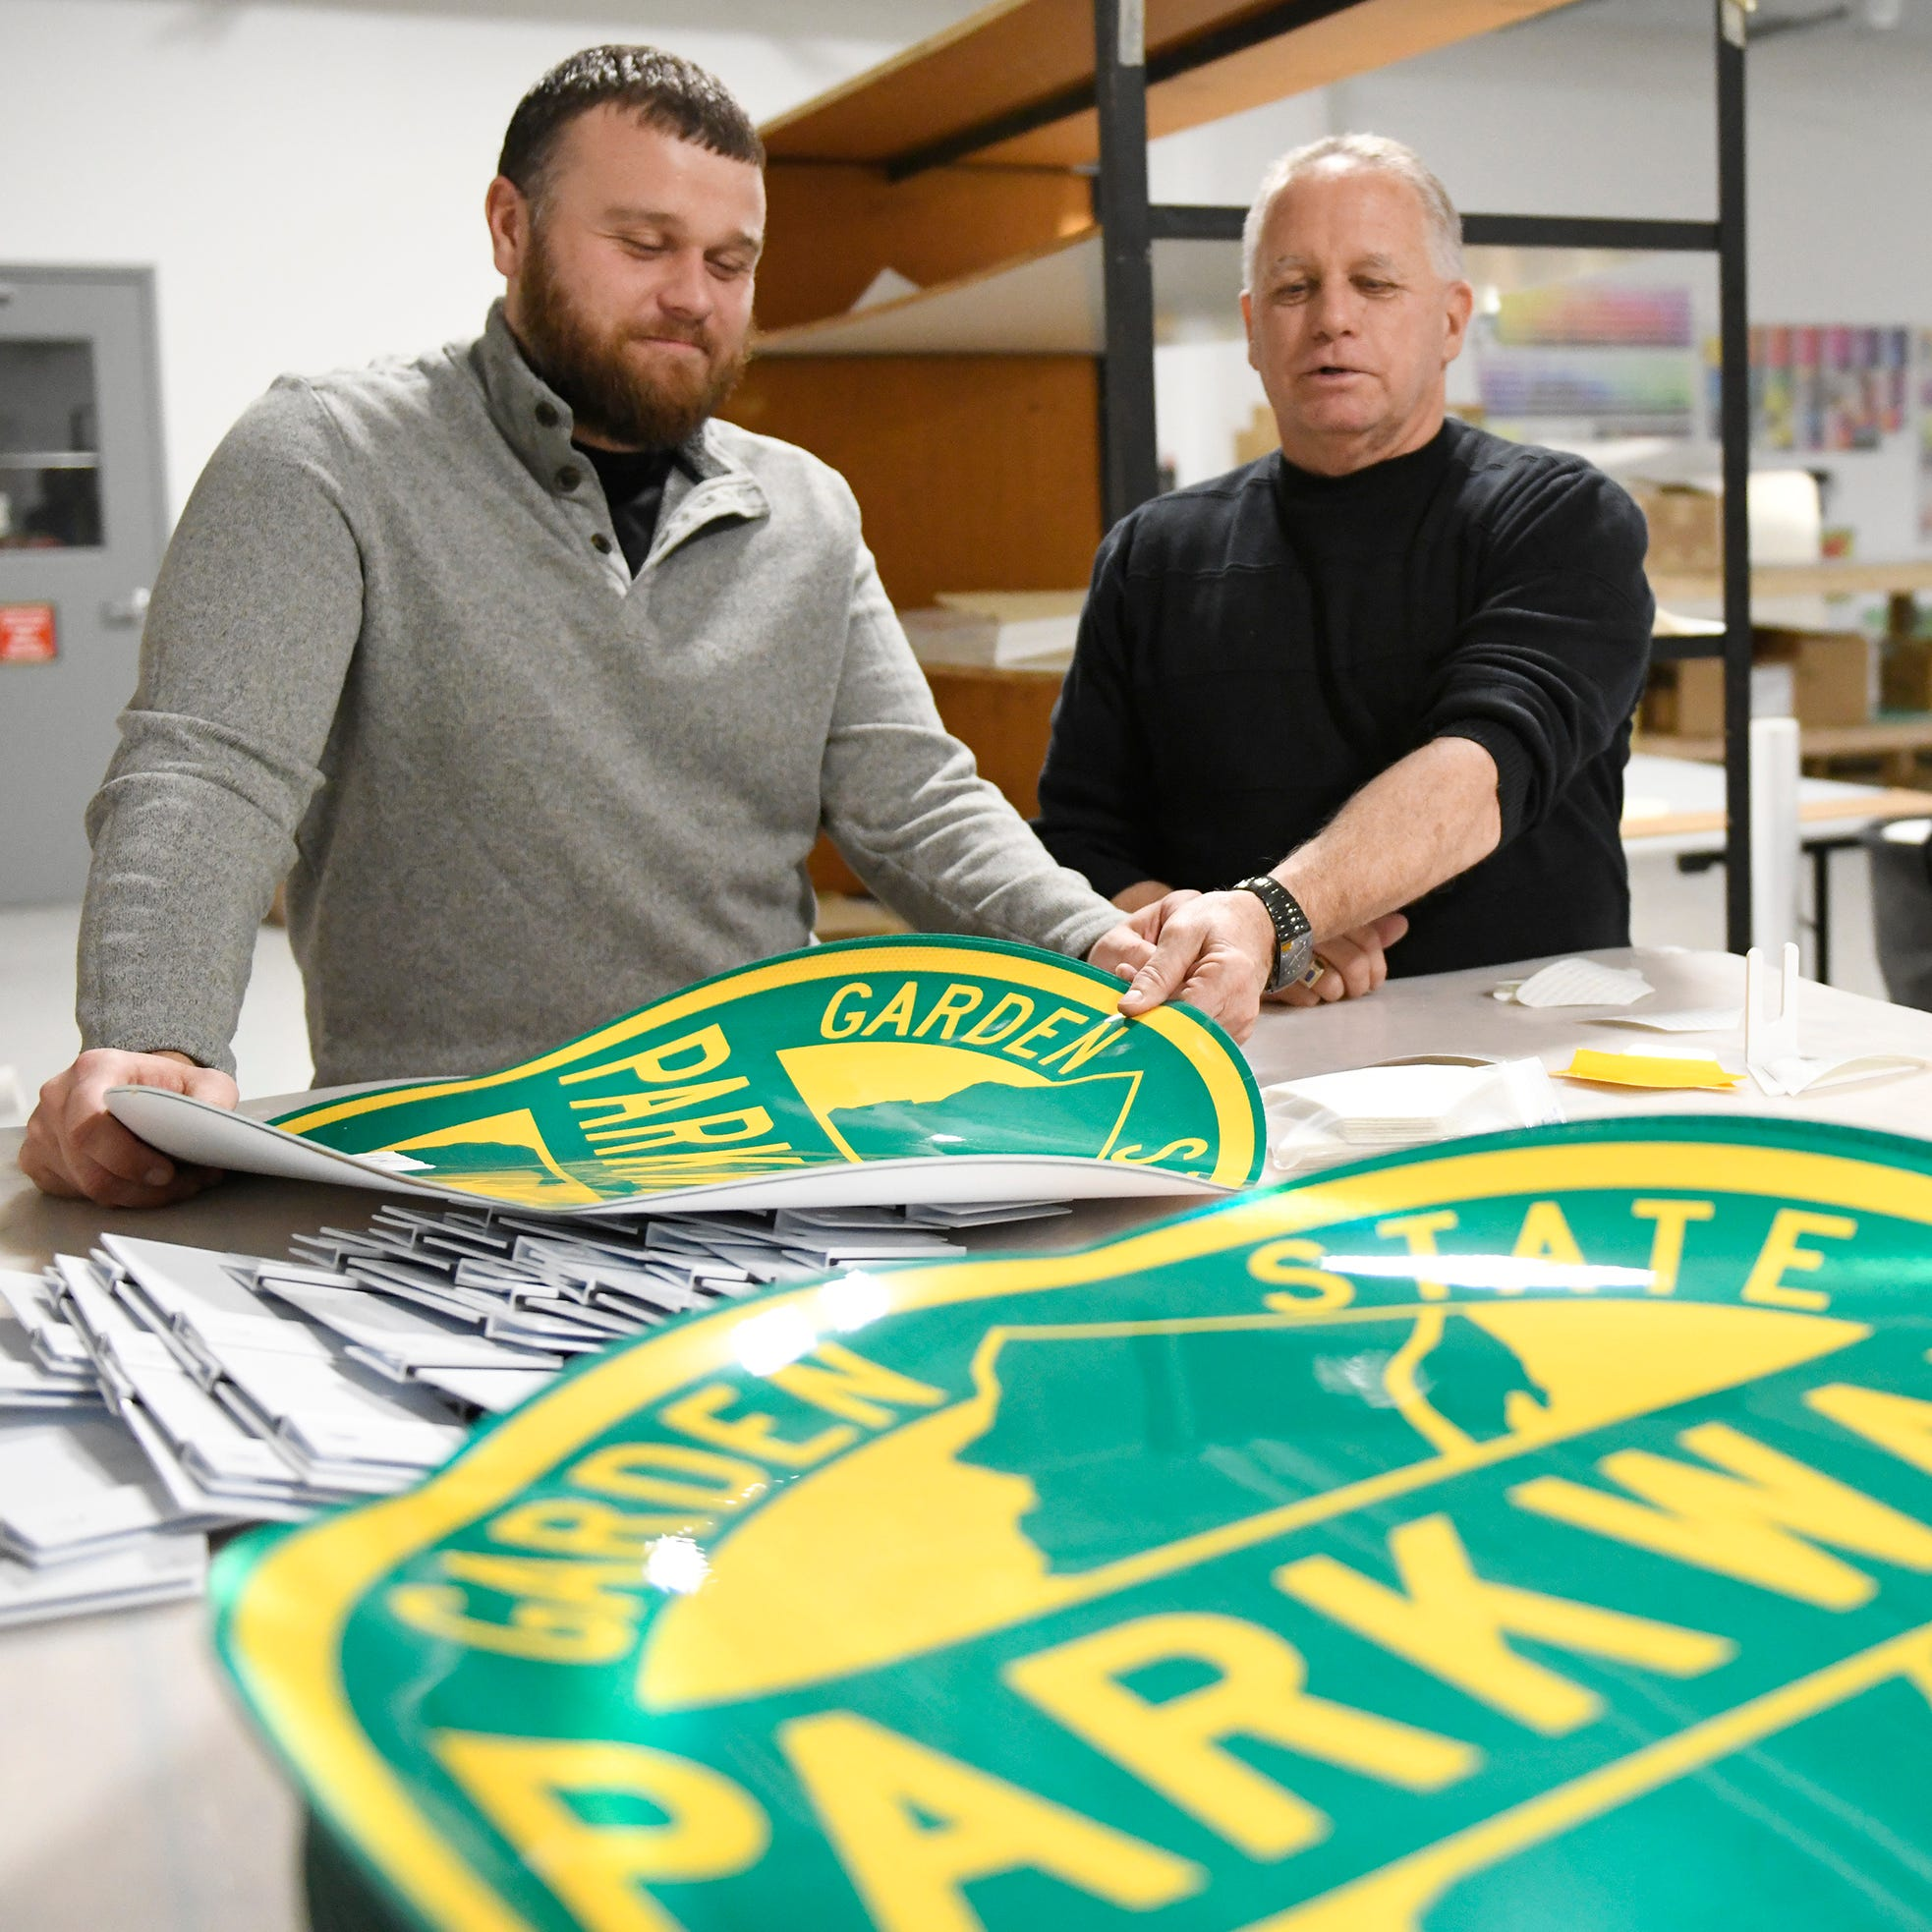 Millville sign business sees open road for new plastic